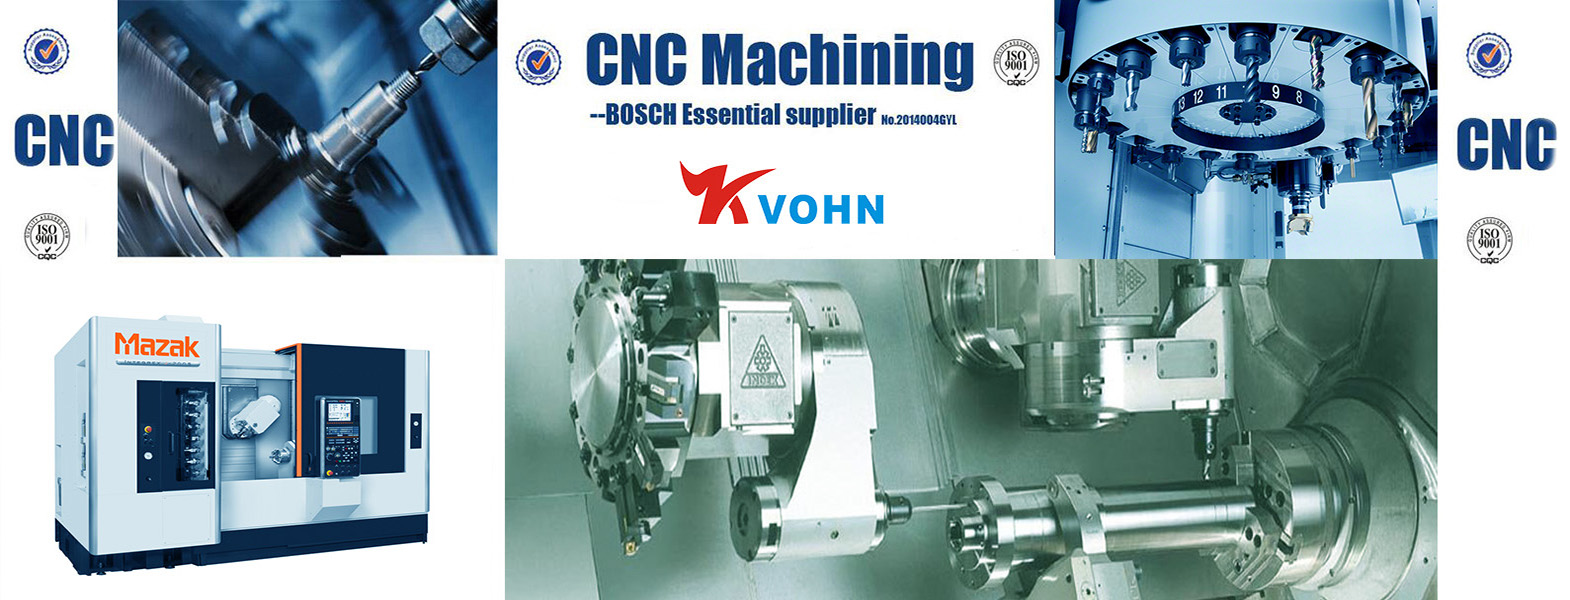 CNC Machining Experts serving Global Industries